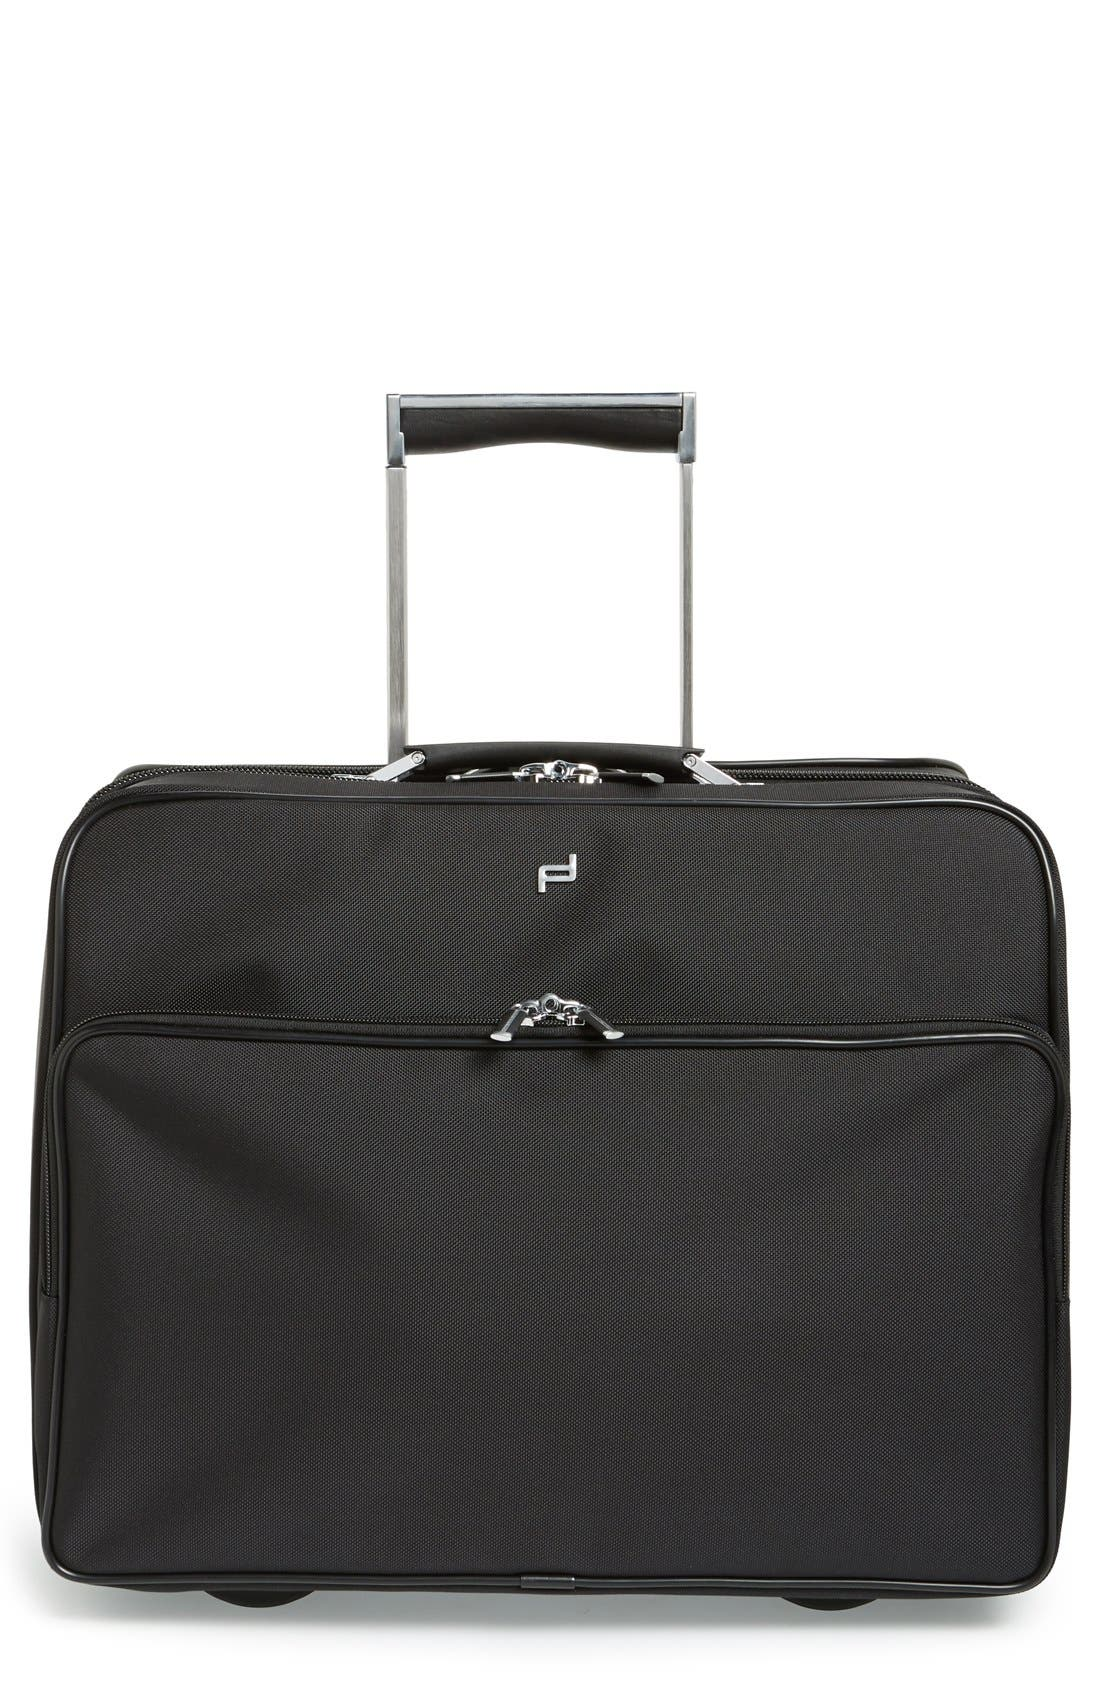 'Roadster 3.0' Wheeled Carry-On,                             Main thumbnail 1, color,                             001